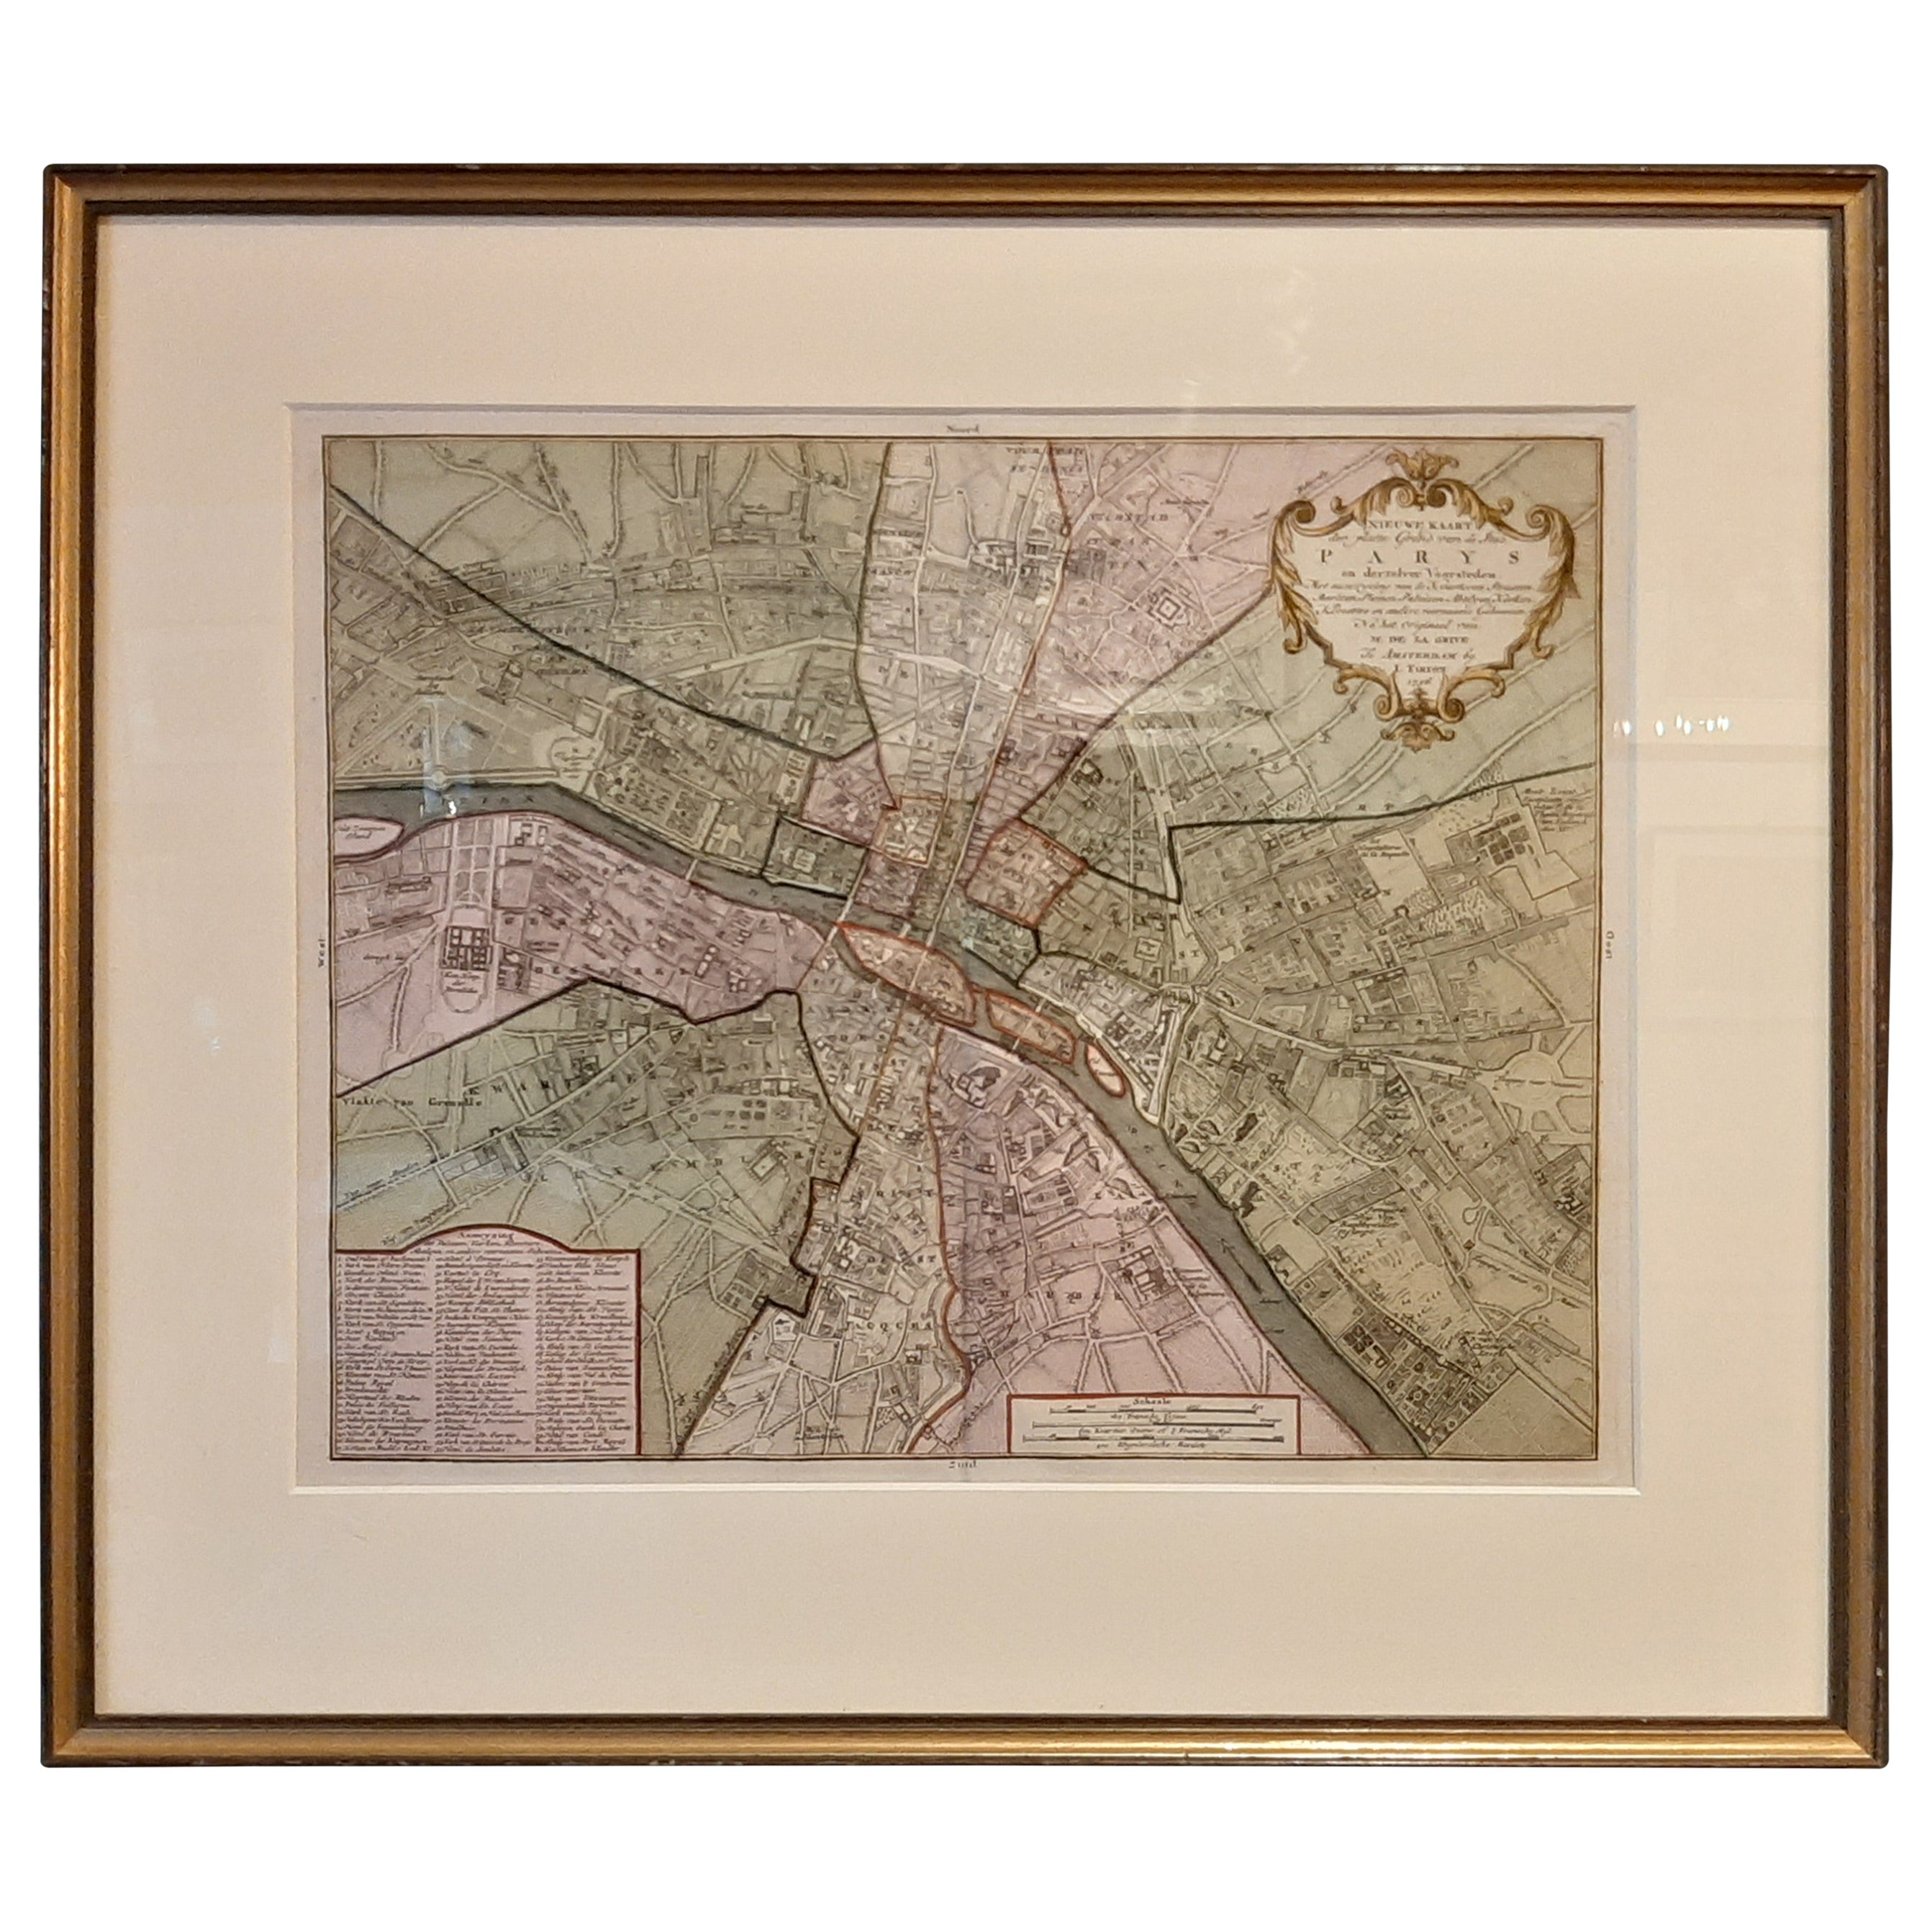 Antique Map of the City of Paris by Tirion '1763'